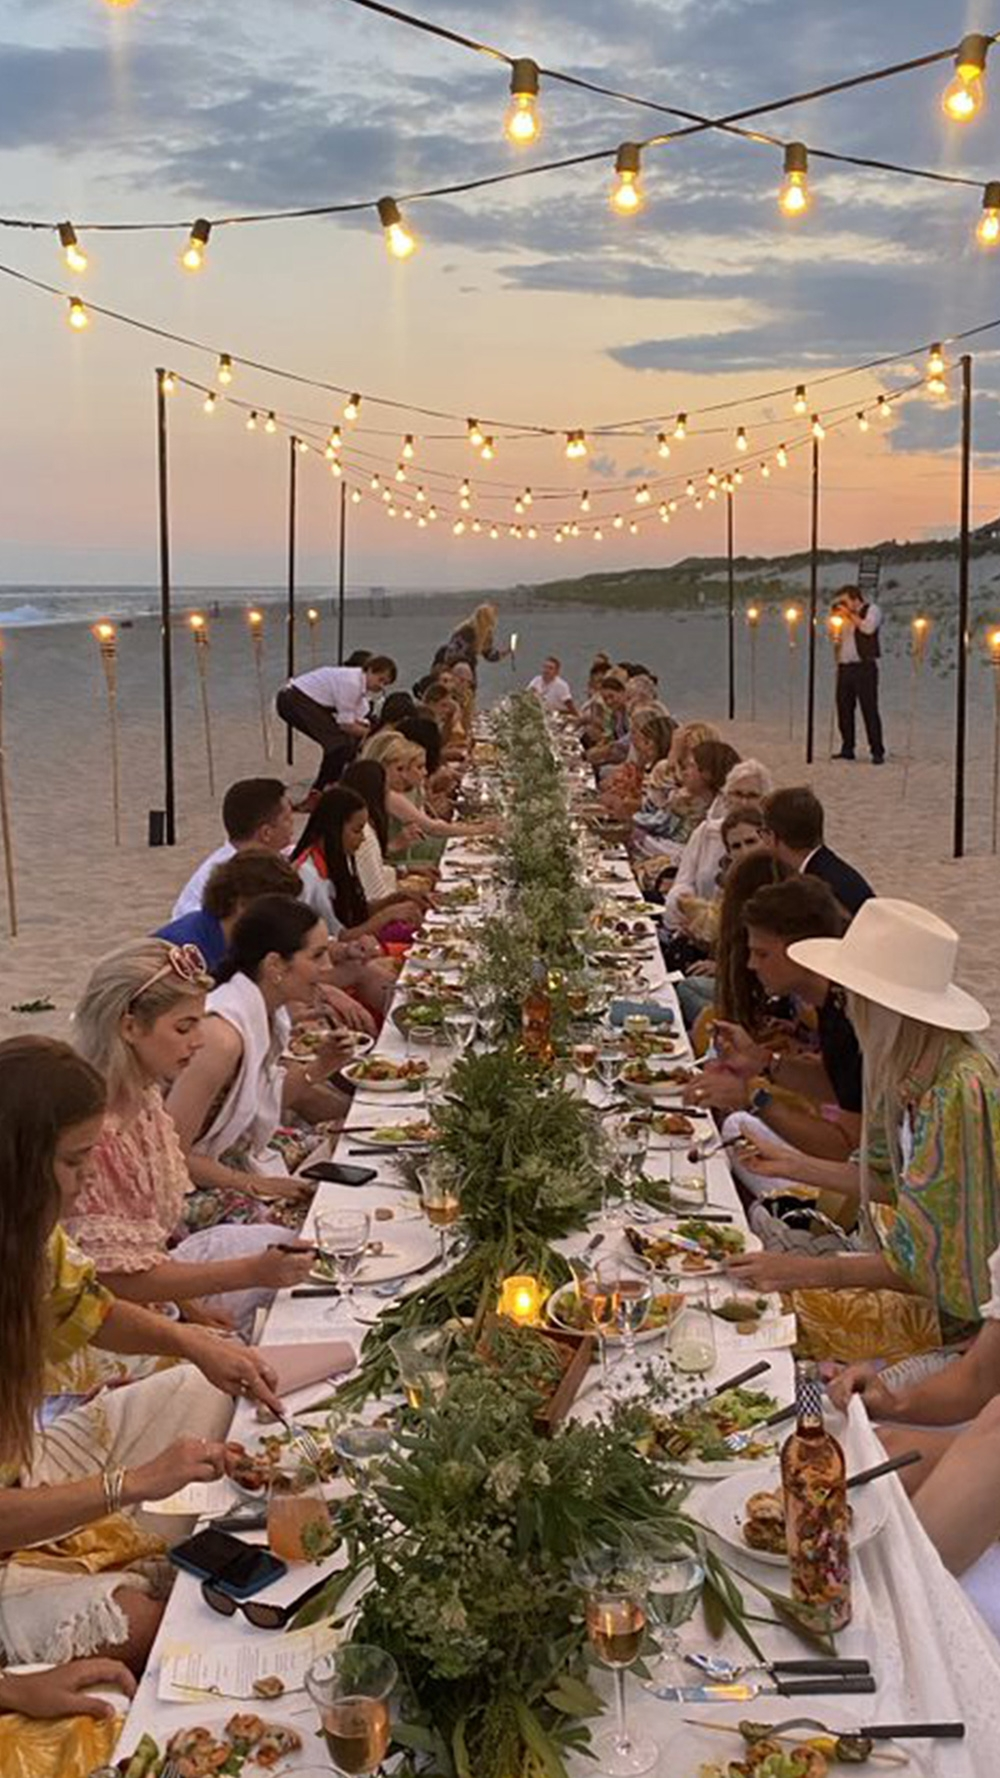 Sunset at dinner in the Hamptons